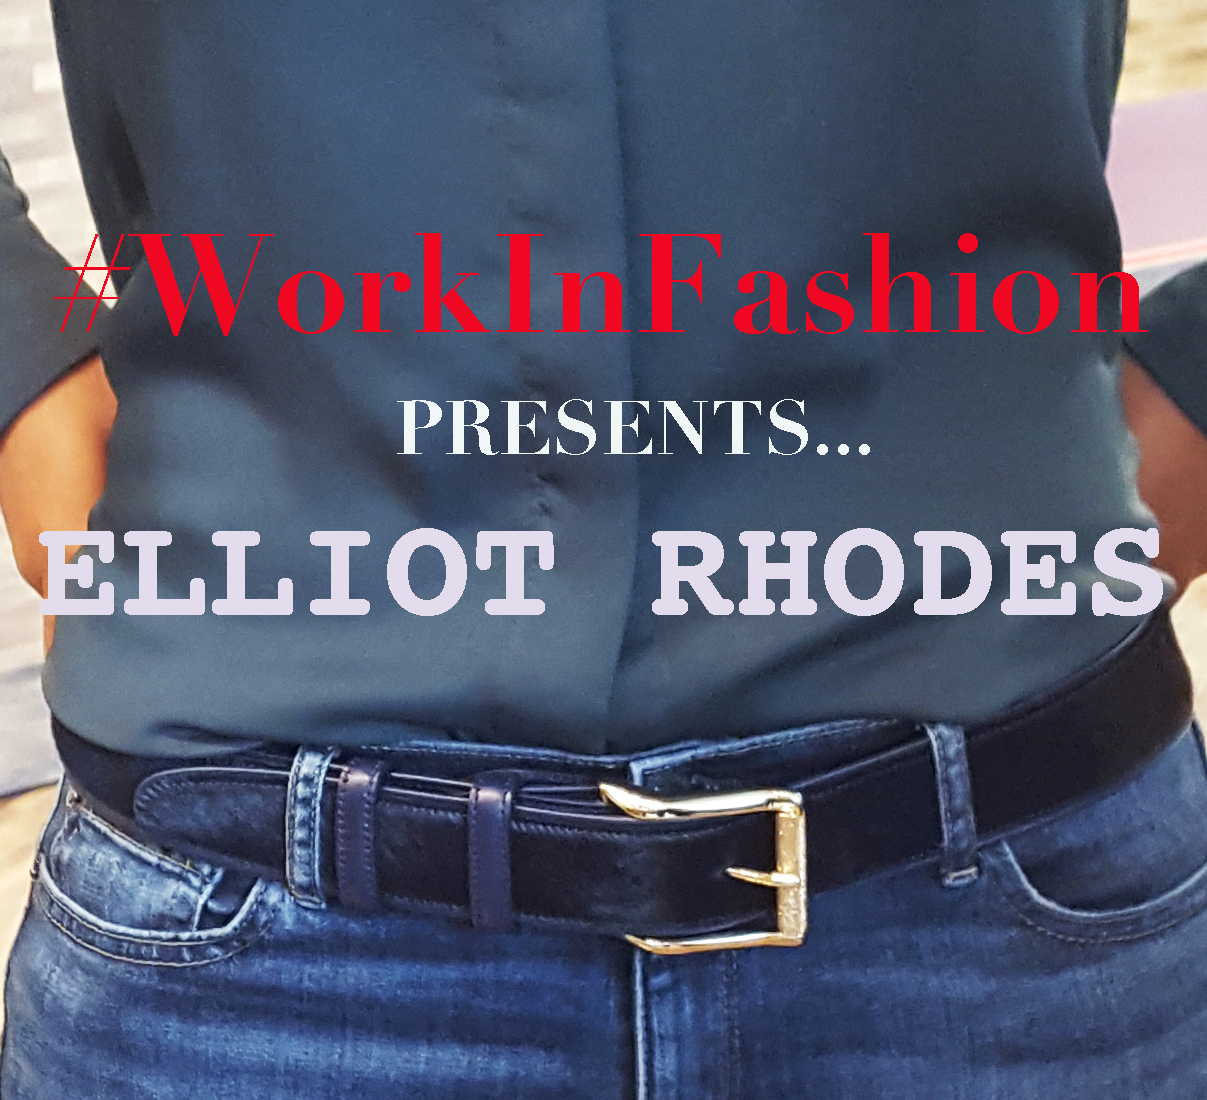 Work In Fashion Presents: Elliot Rhodes by Yasmin Jones-Henry